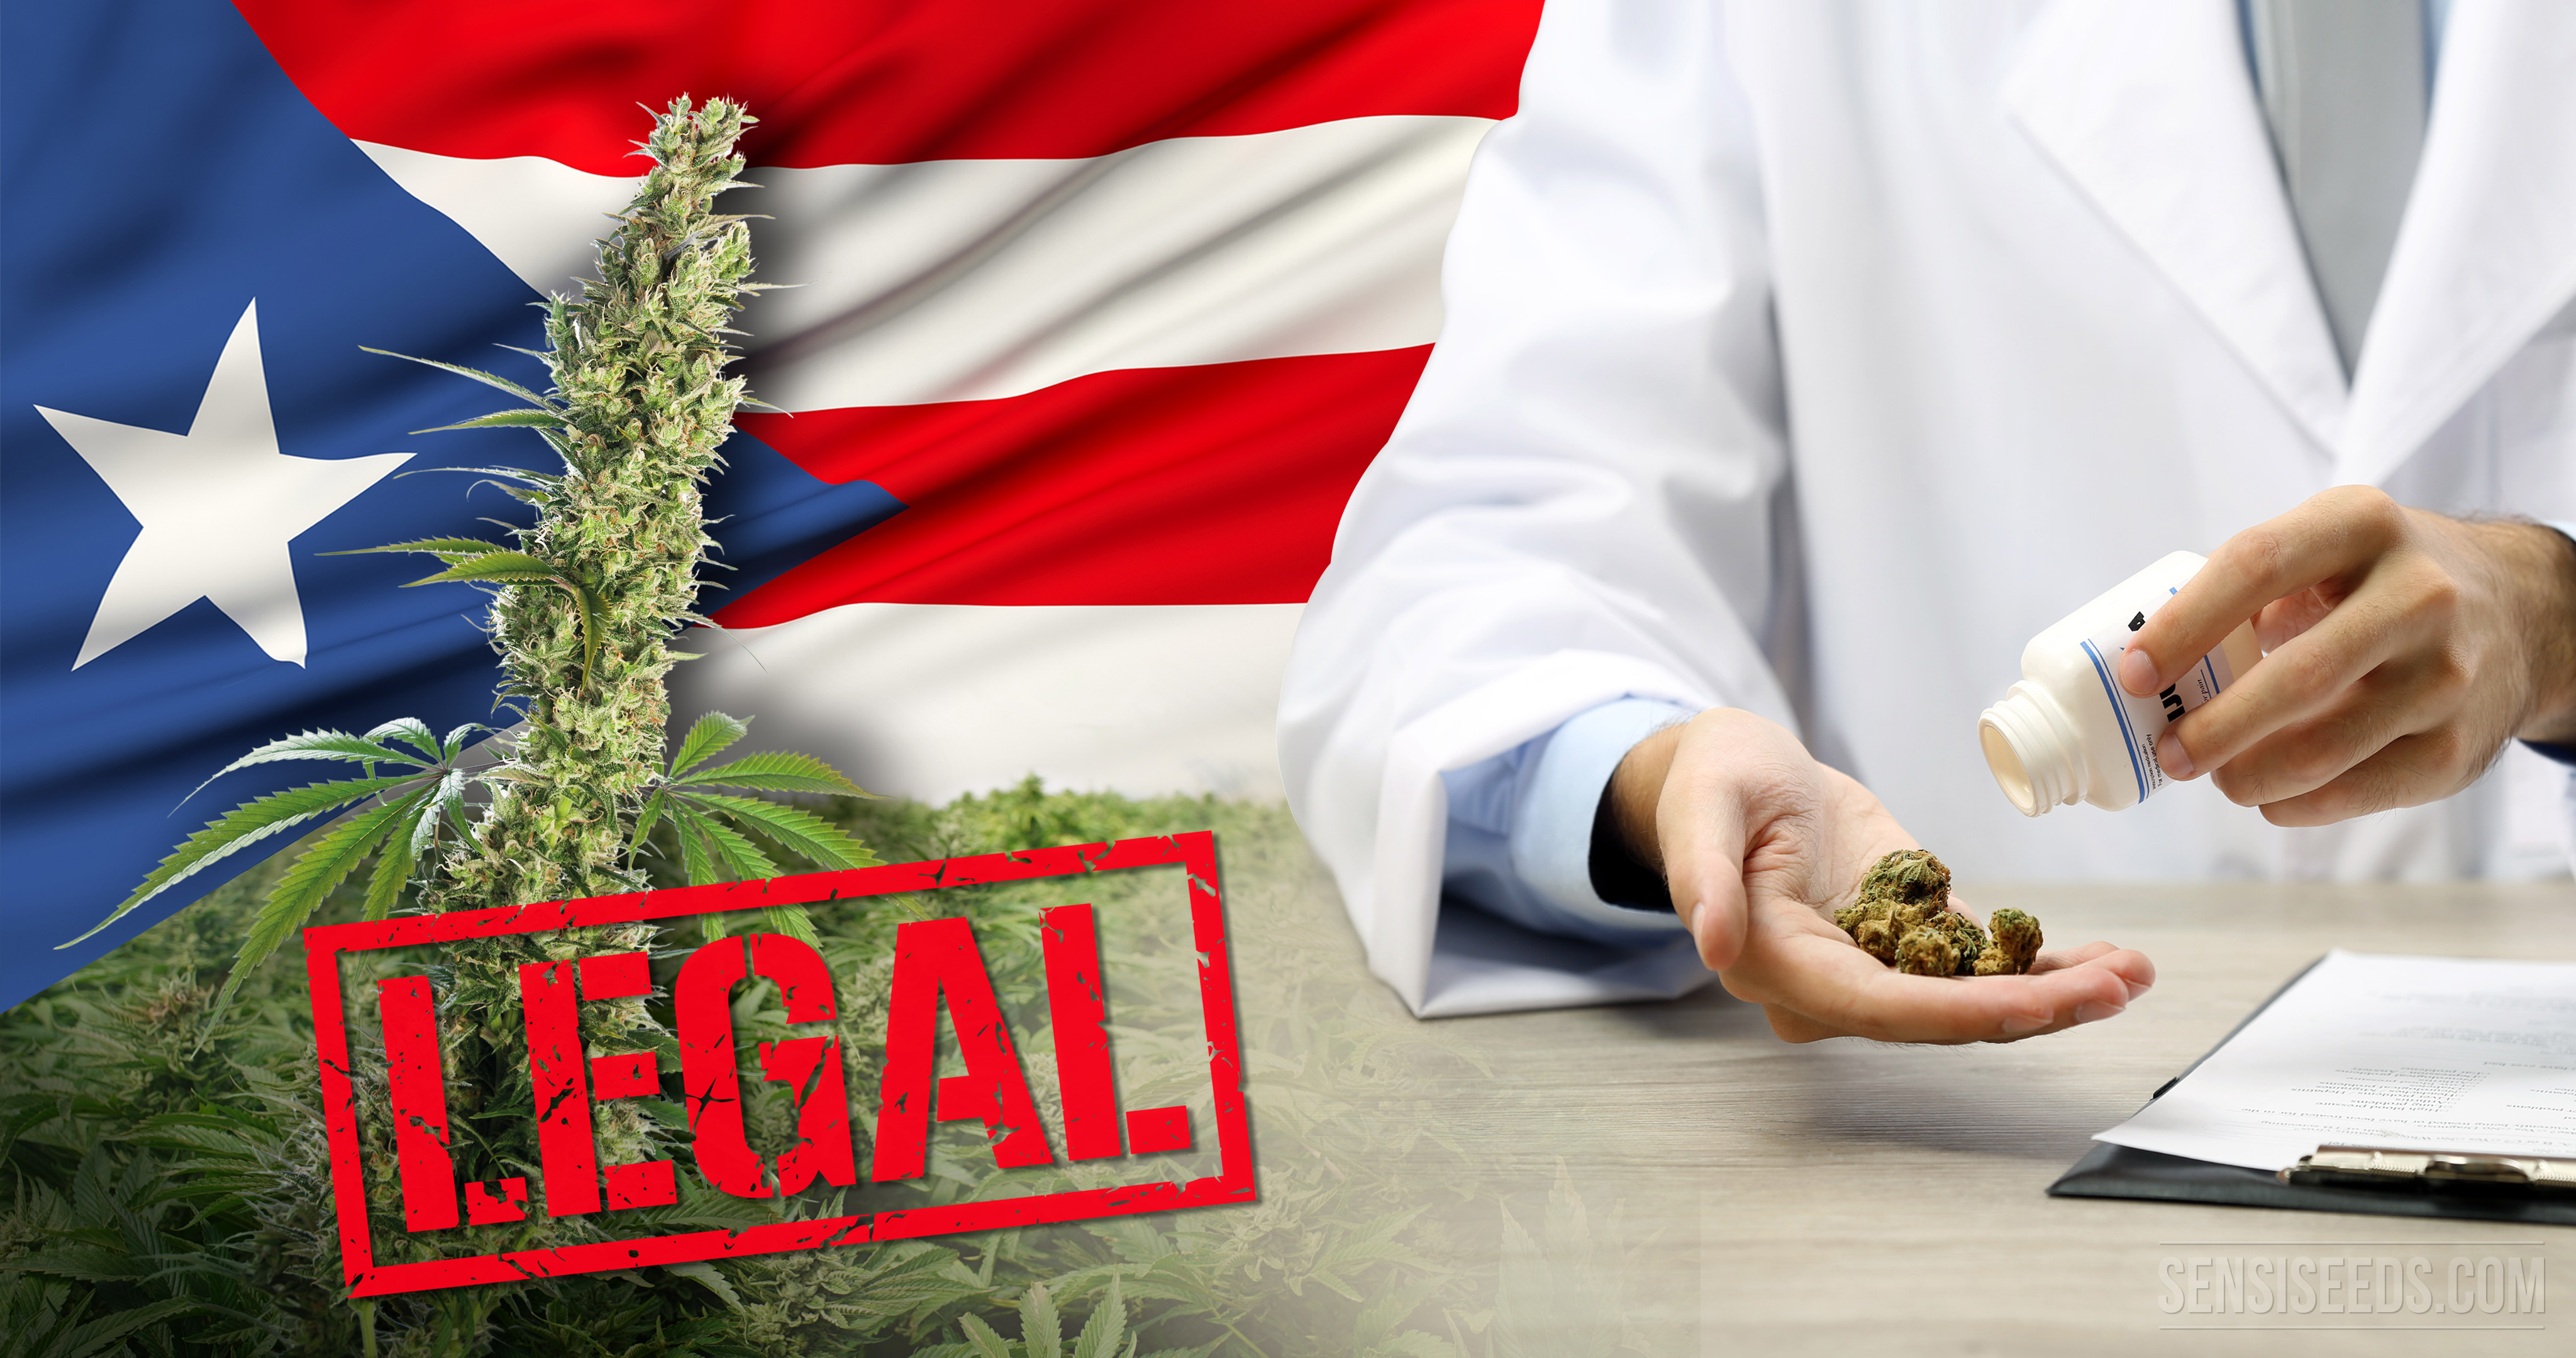 puerto-rico-licenses-for-growing-medicinal-cannabis-4k